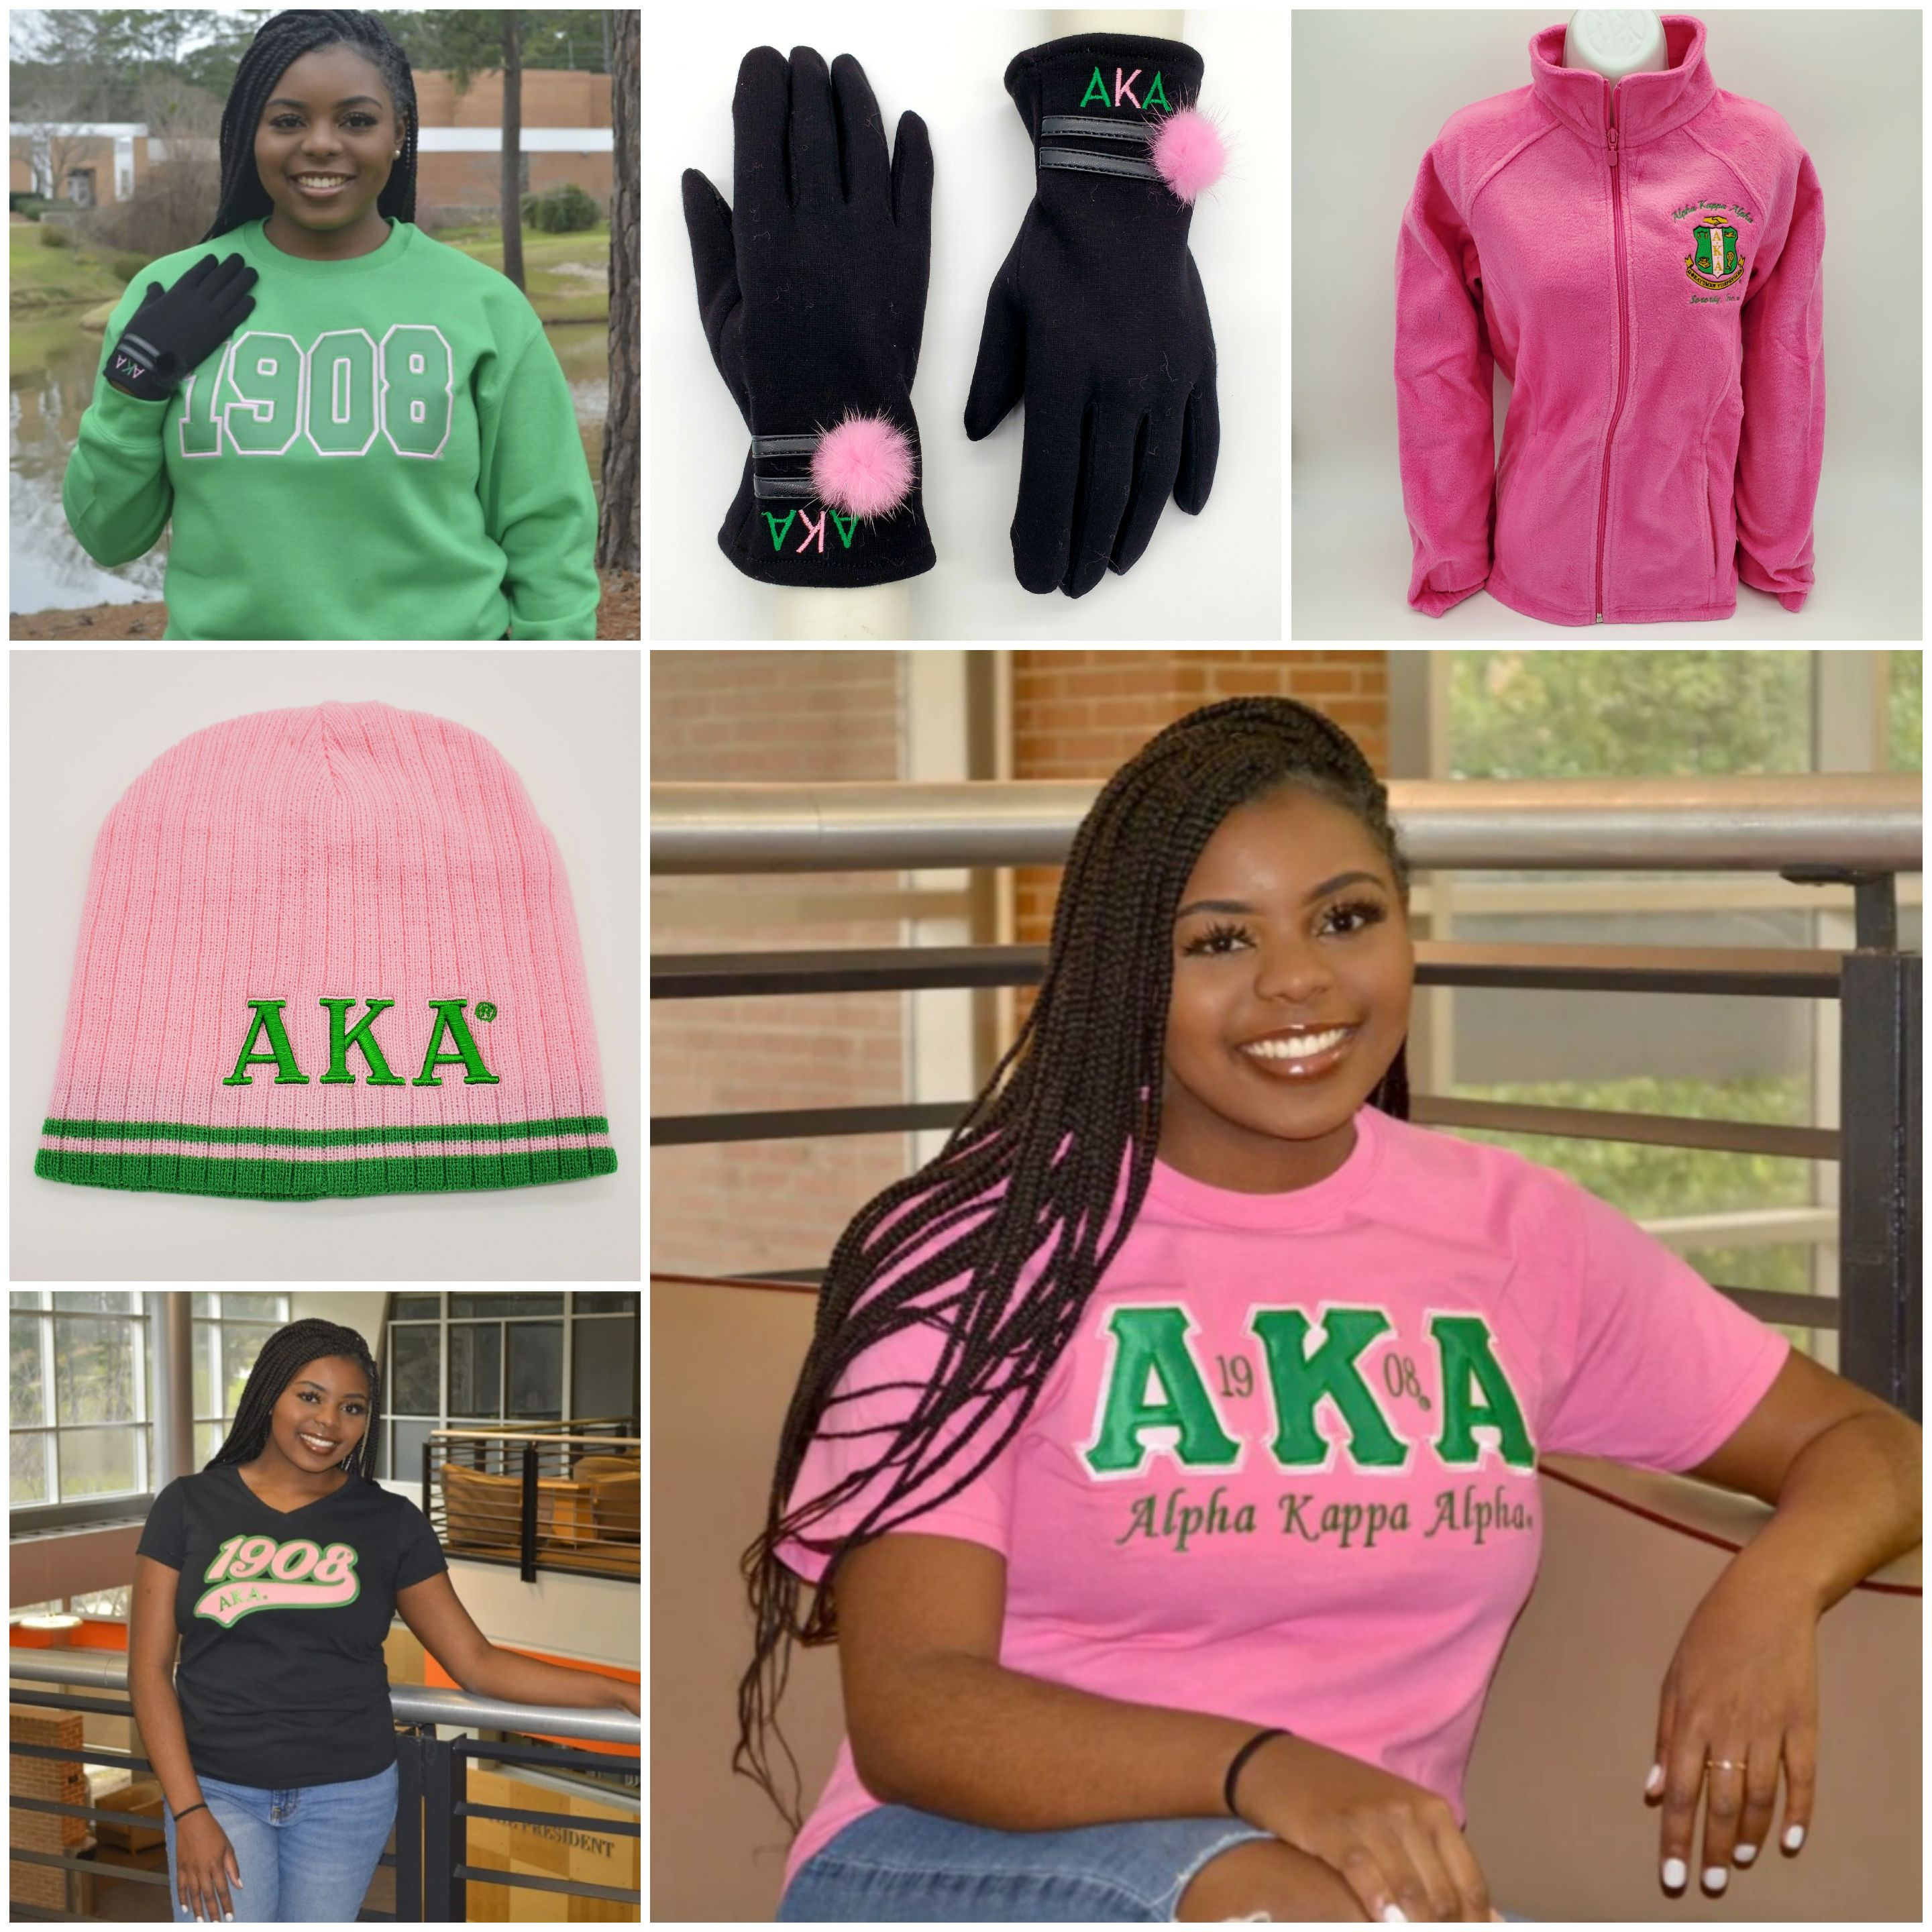 Shop AKA Apparel